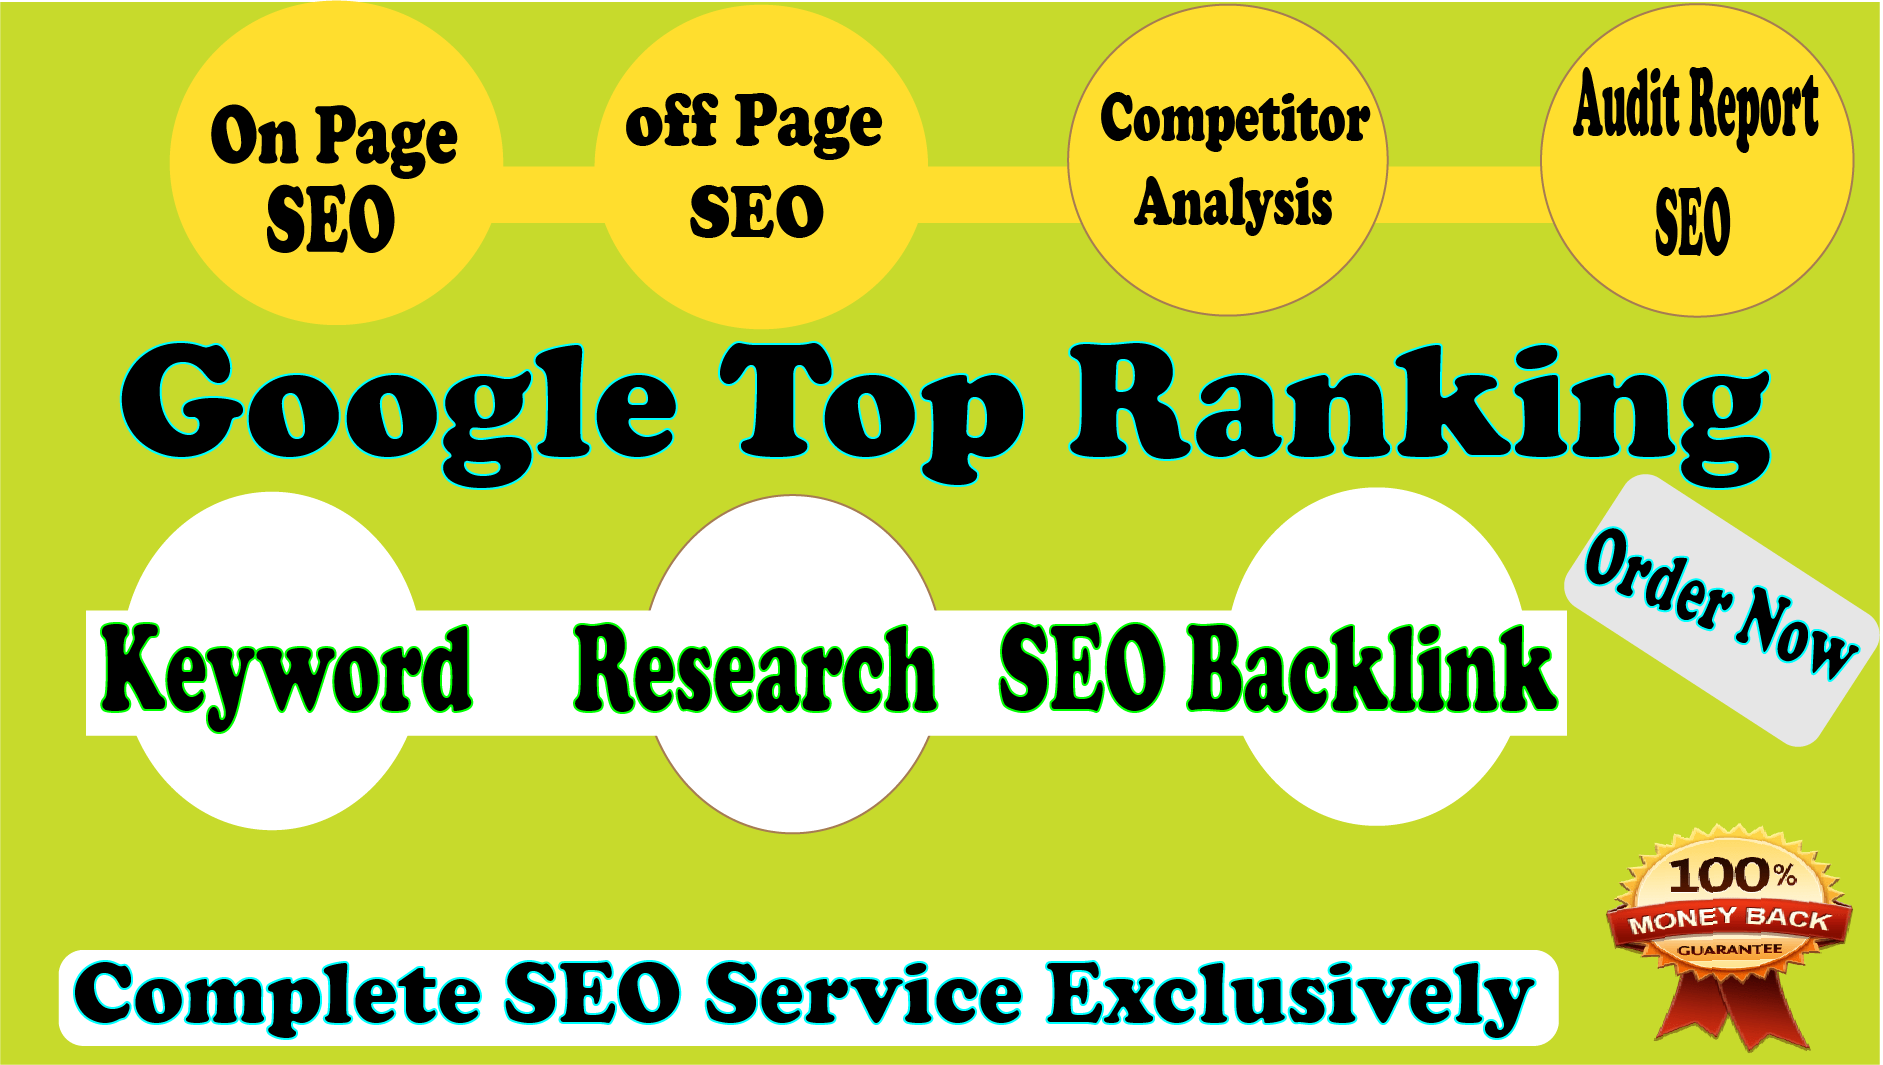 I will 200+ SEO back-links white hat manual link building service for google top ranking